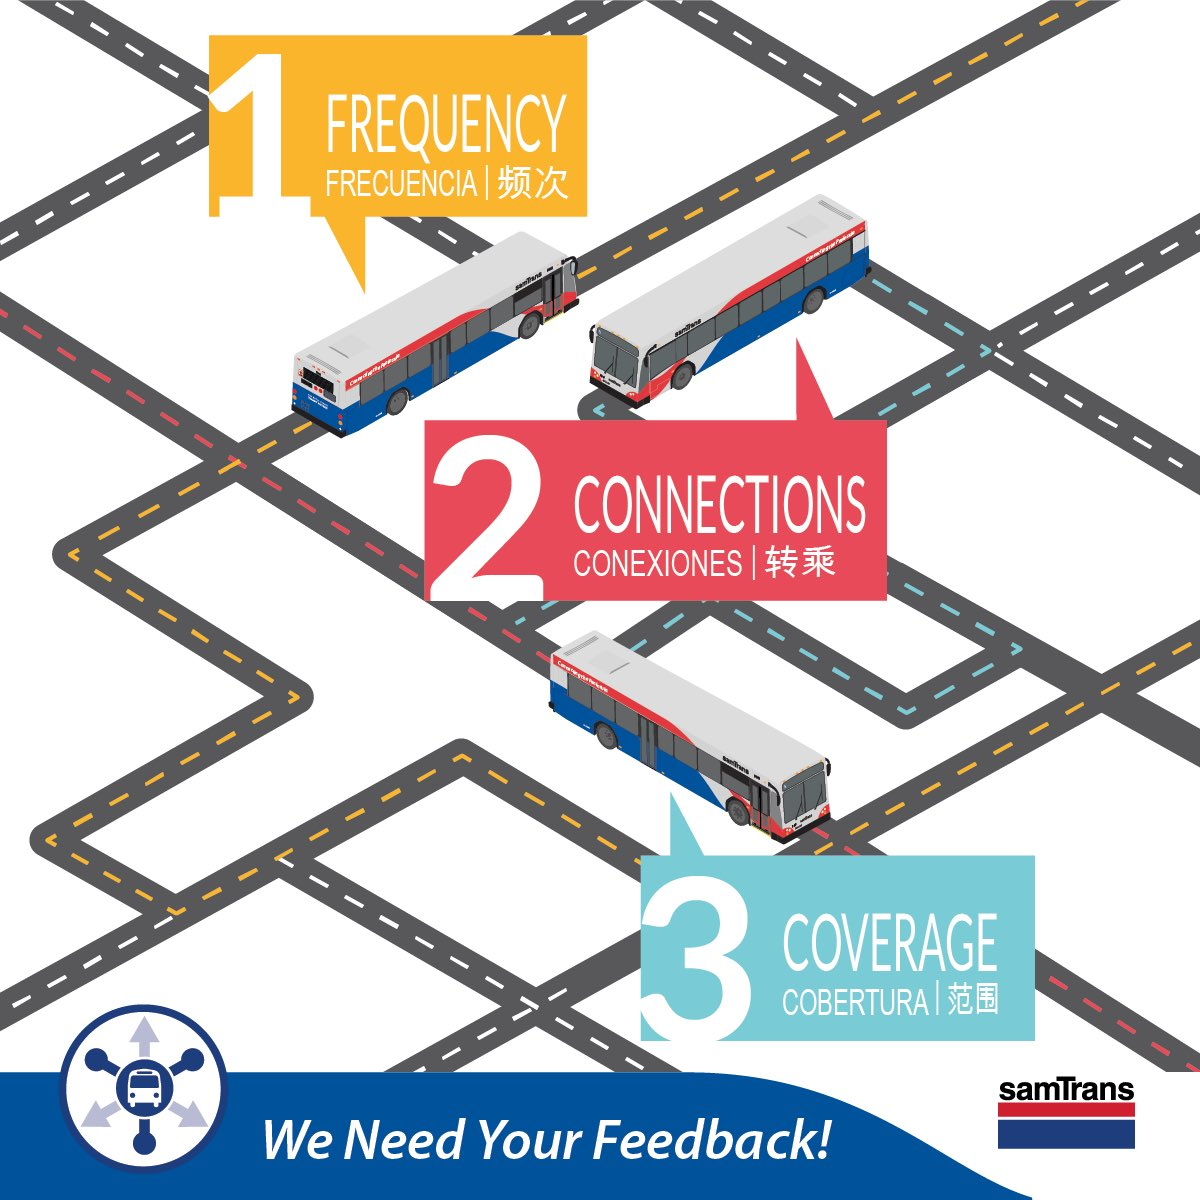 Share your thoughts with @SamTrans! Take the quick survey below.